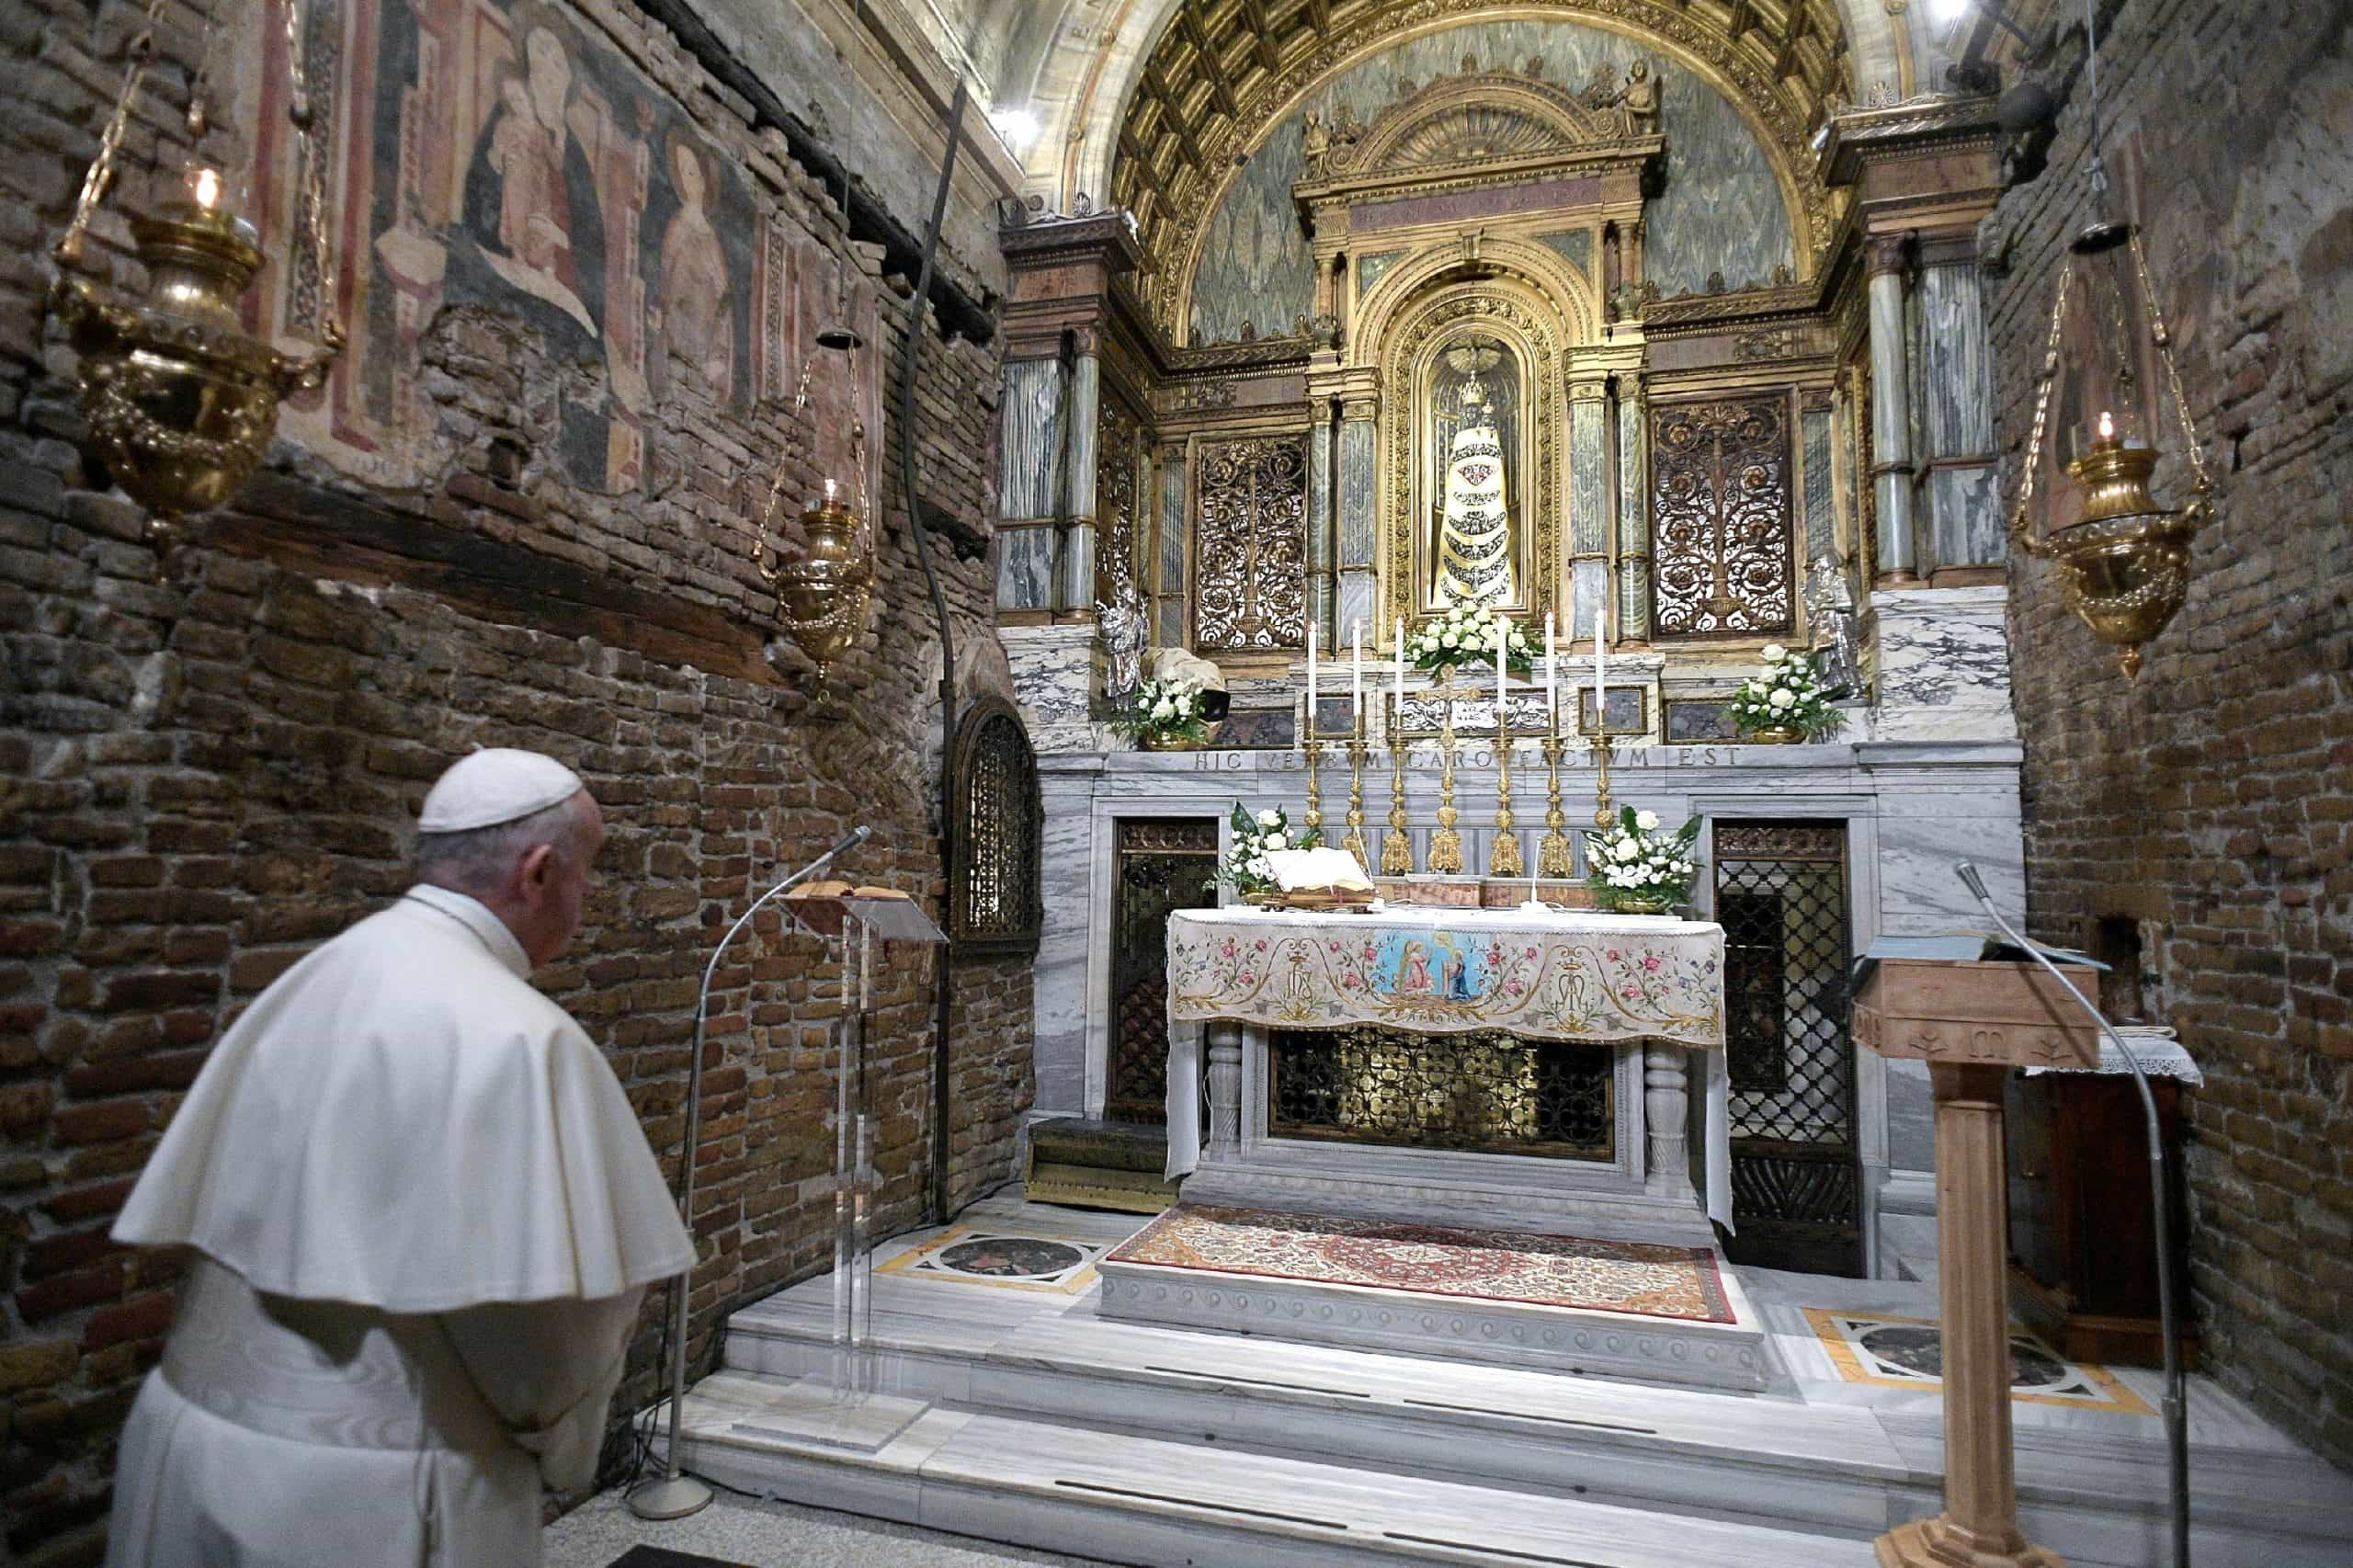 09 May – Rosary for the end to the pandemic from the Shrine of OUR LADY OF LORETO, Italy